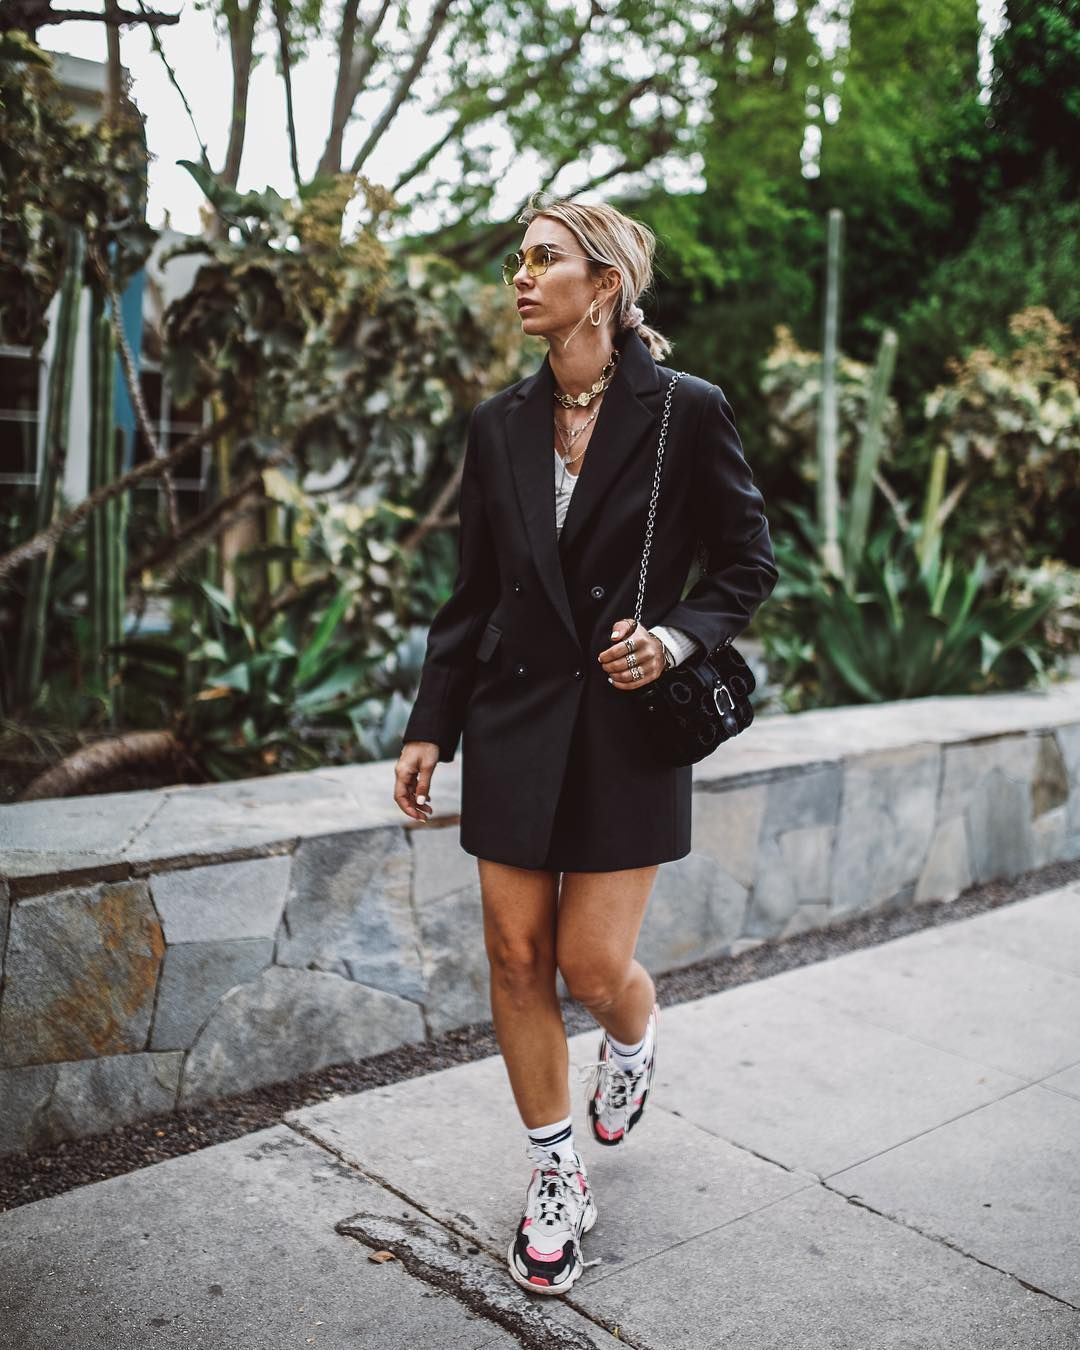 Girlboss Outfit Blazer Dress With Sneakers Dress And Sneakers Outfit Dress With Sneakers Skirt And Sneakers [ 1350 x 1080 Pixel ]